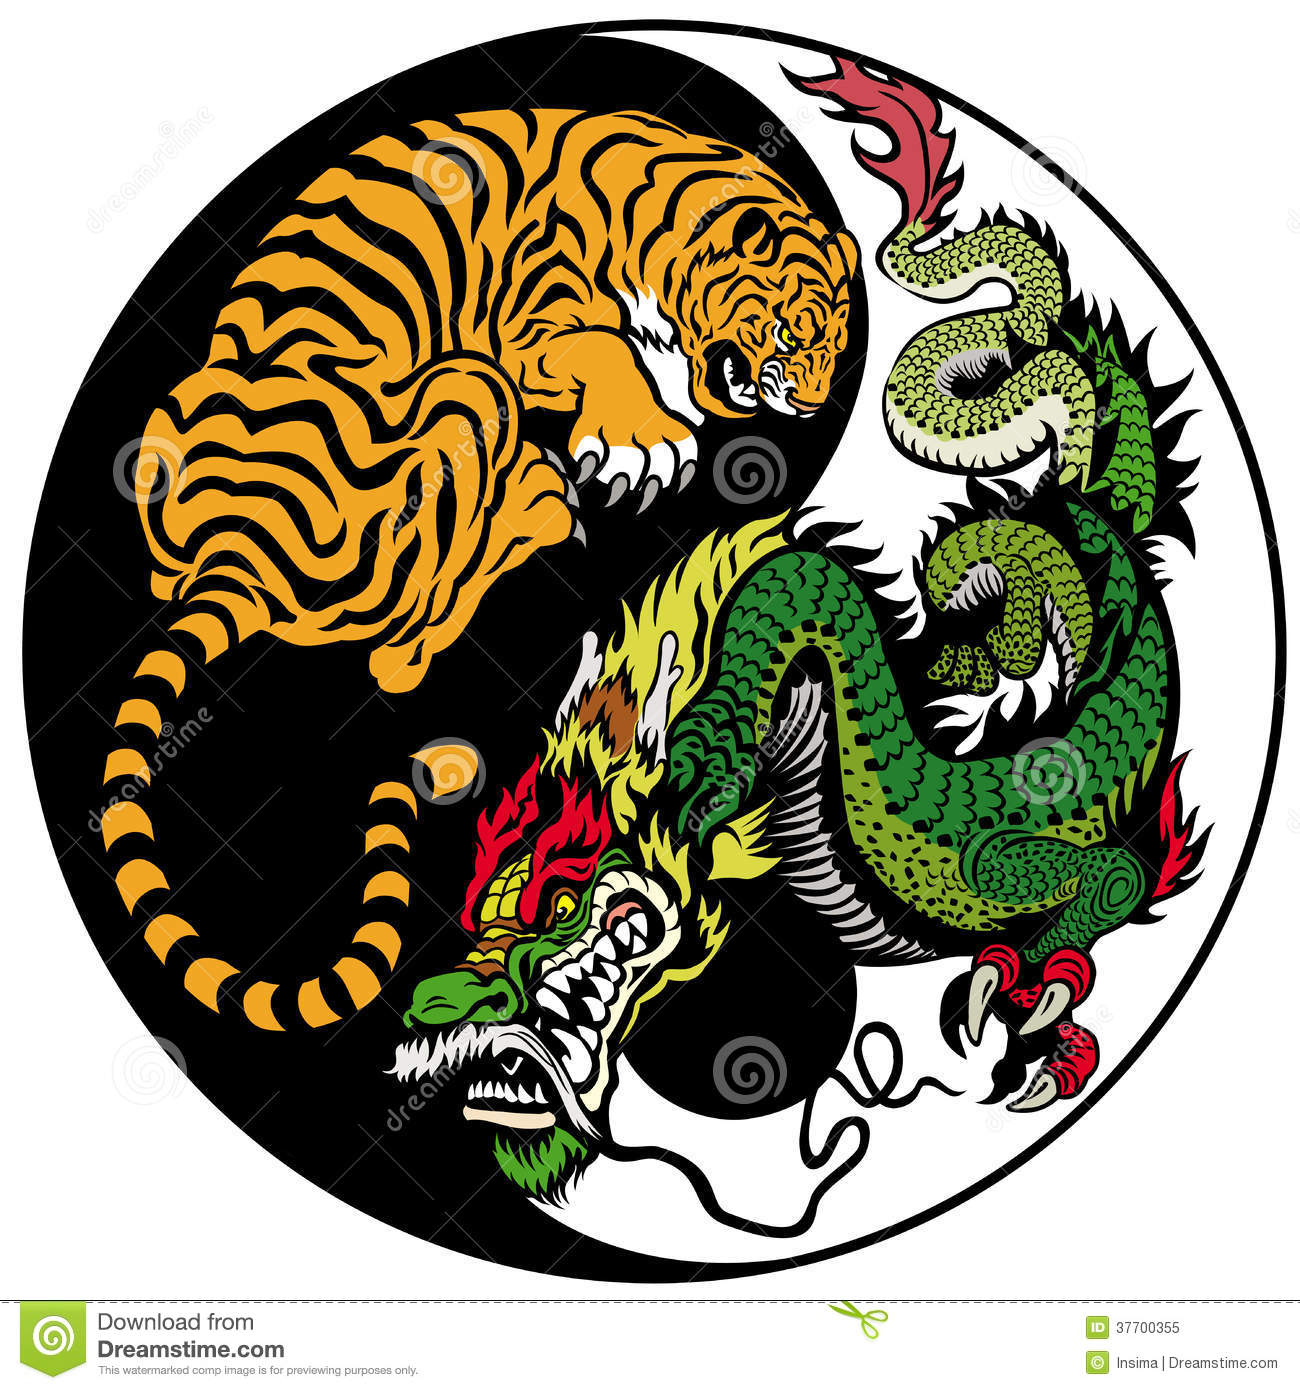 Dragon And Tiger Yin Yang Stock Vector Illustration Of Force 37700355